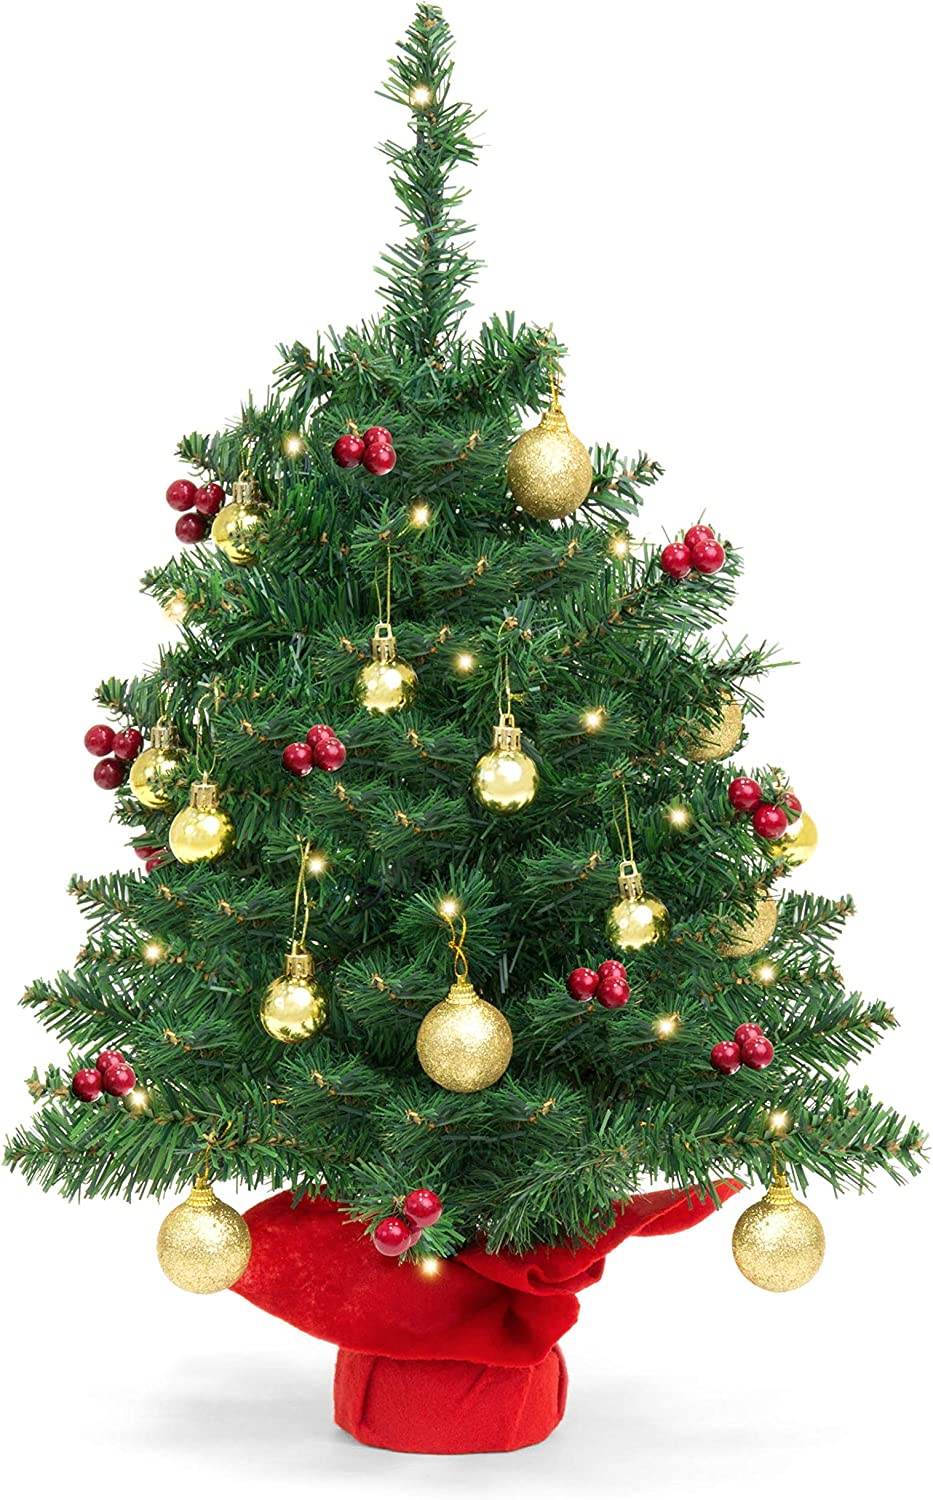 amazon com best choice products 22 inch pre lit battery operated tabletop mini artificial christmas tree decor w led lights red berries gold ornaments green home kitchen best choice products 22 inch pre lit battery operated tabletop mini artificial christmas tree decor w led lights red berries gold ornaments green